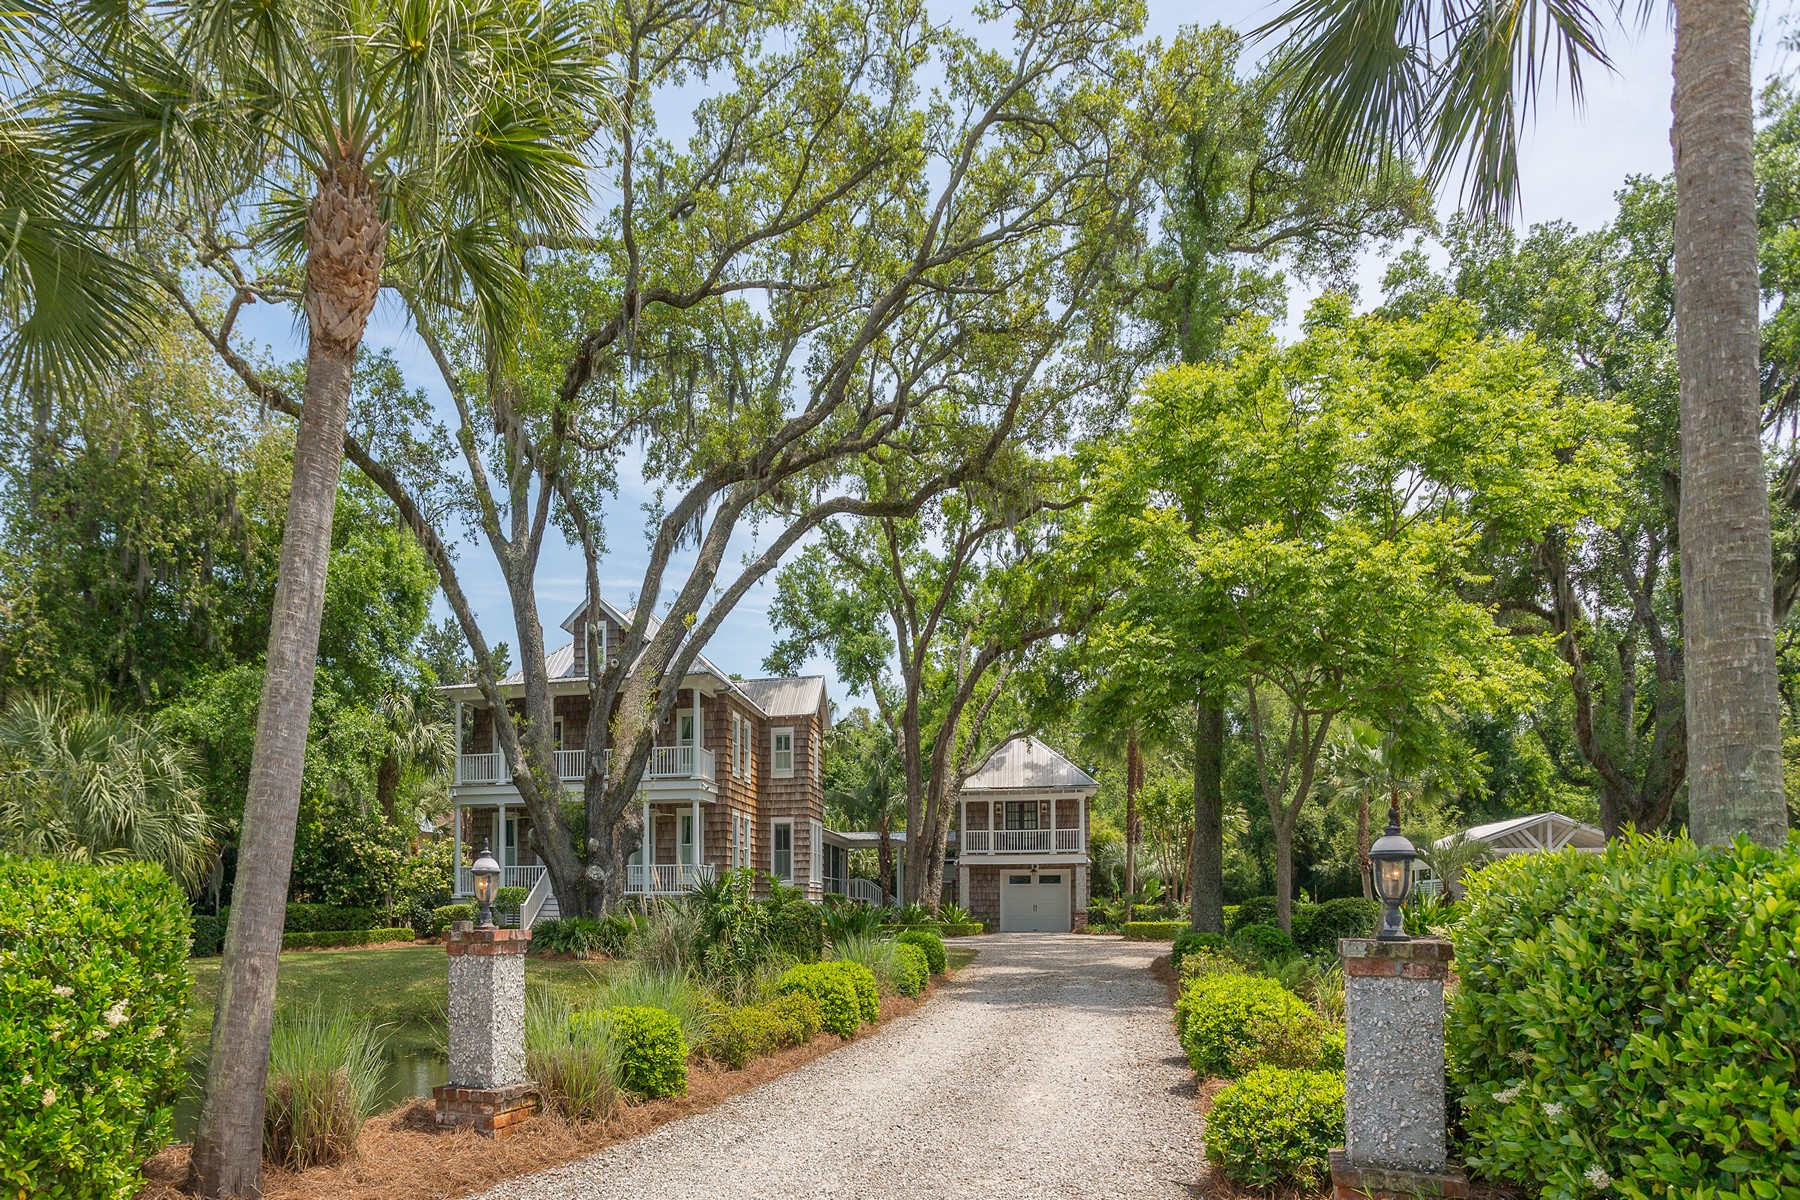 Single Family Homes for Sale at 125 Santa Maria Circle St. Simons Island, Georgia 31522 United States